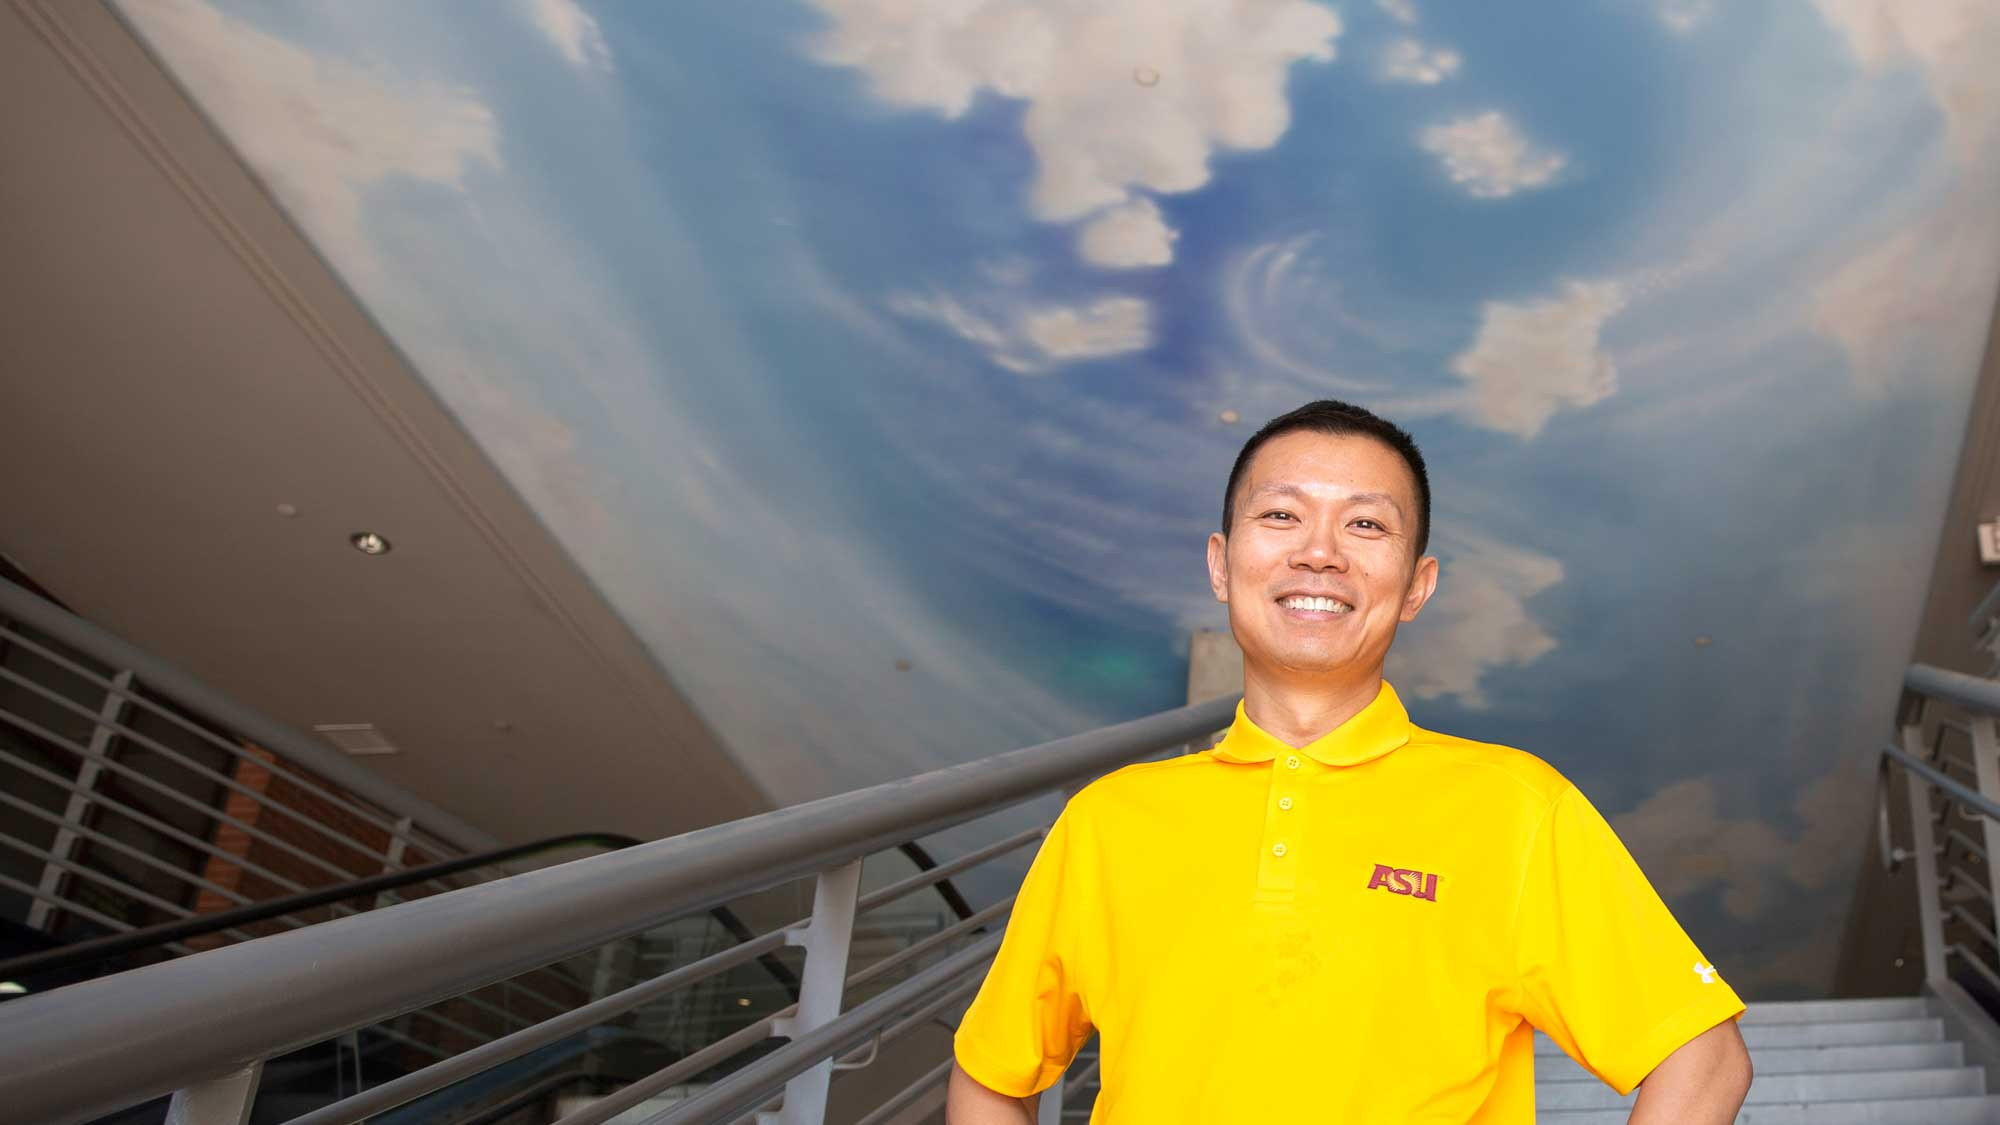 Ming Zhao stands on a staircase, hands on hips, with a sky and cloud-painted ceiling above